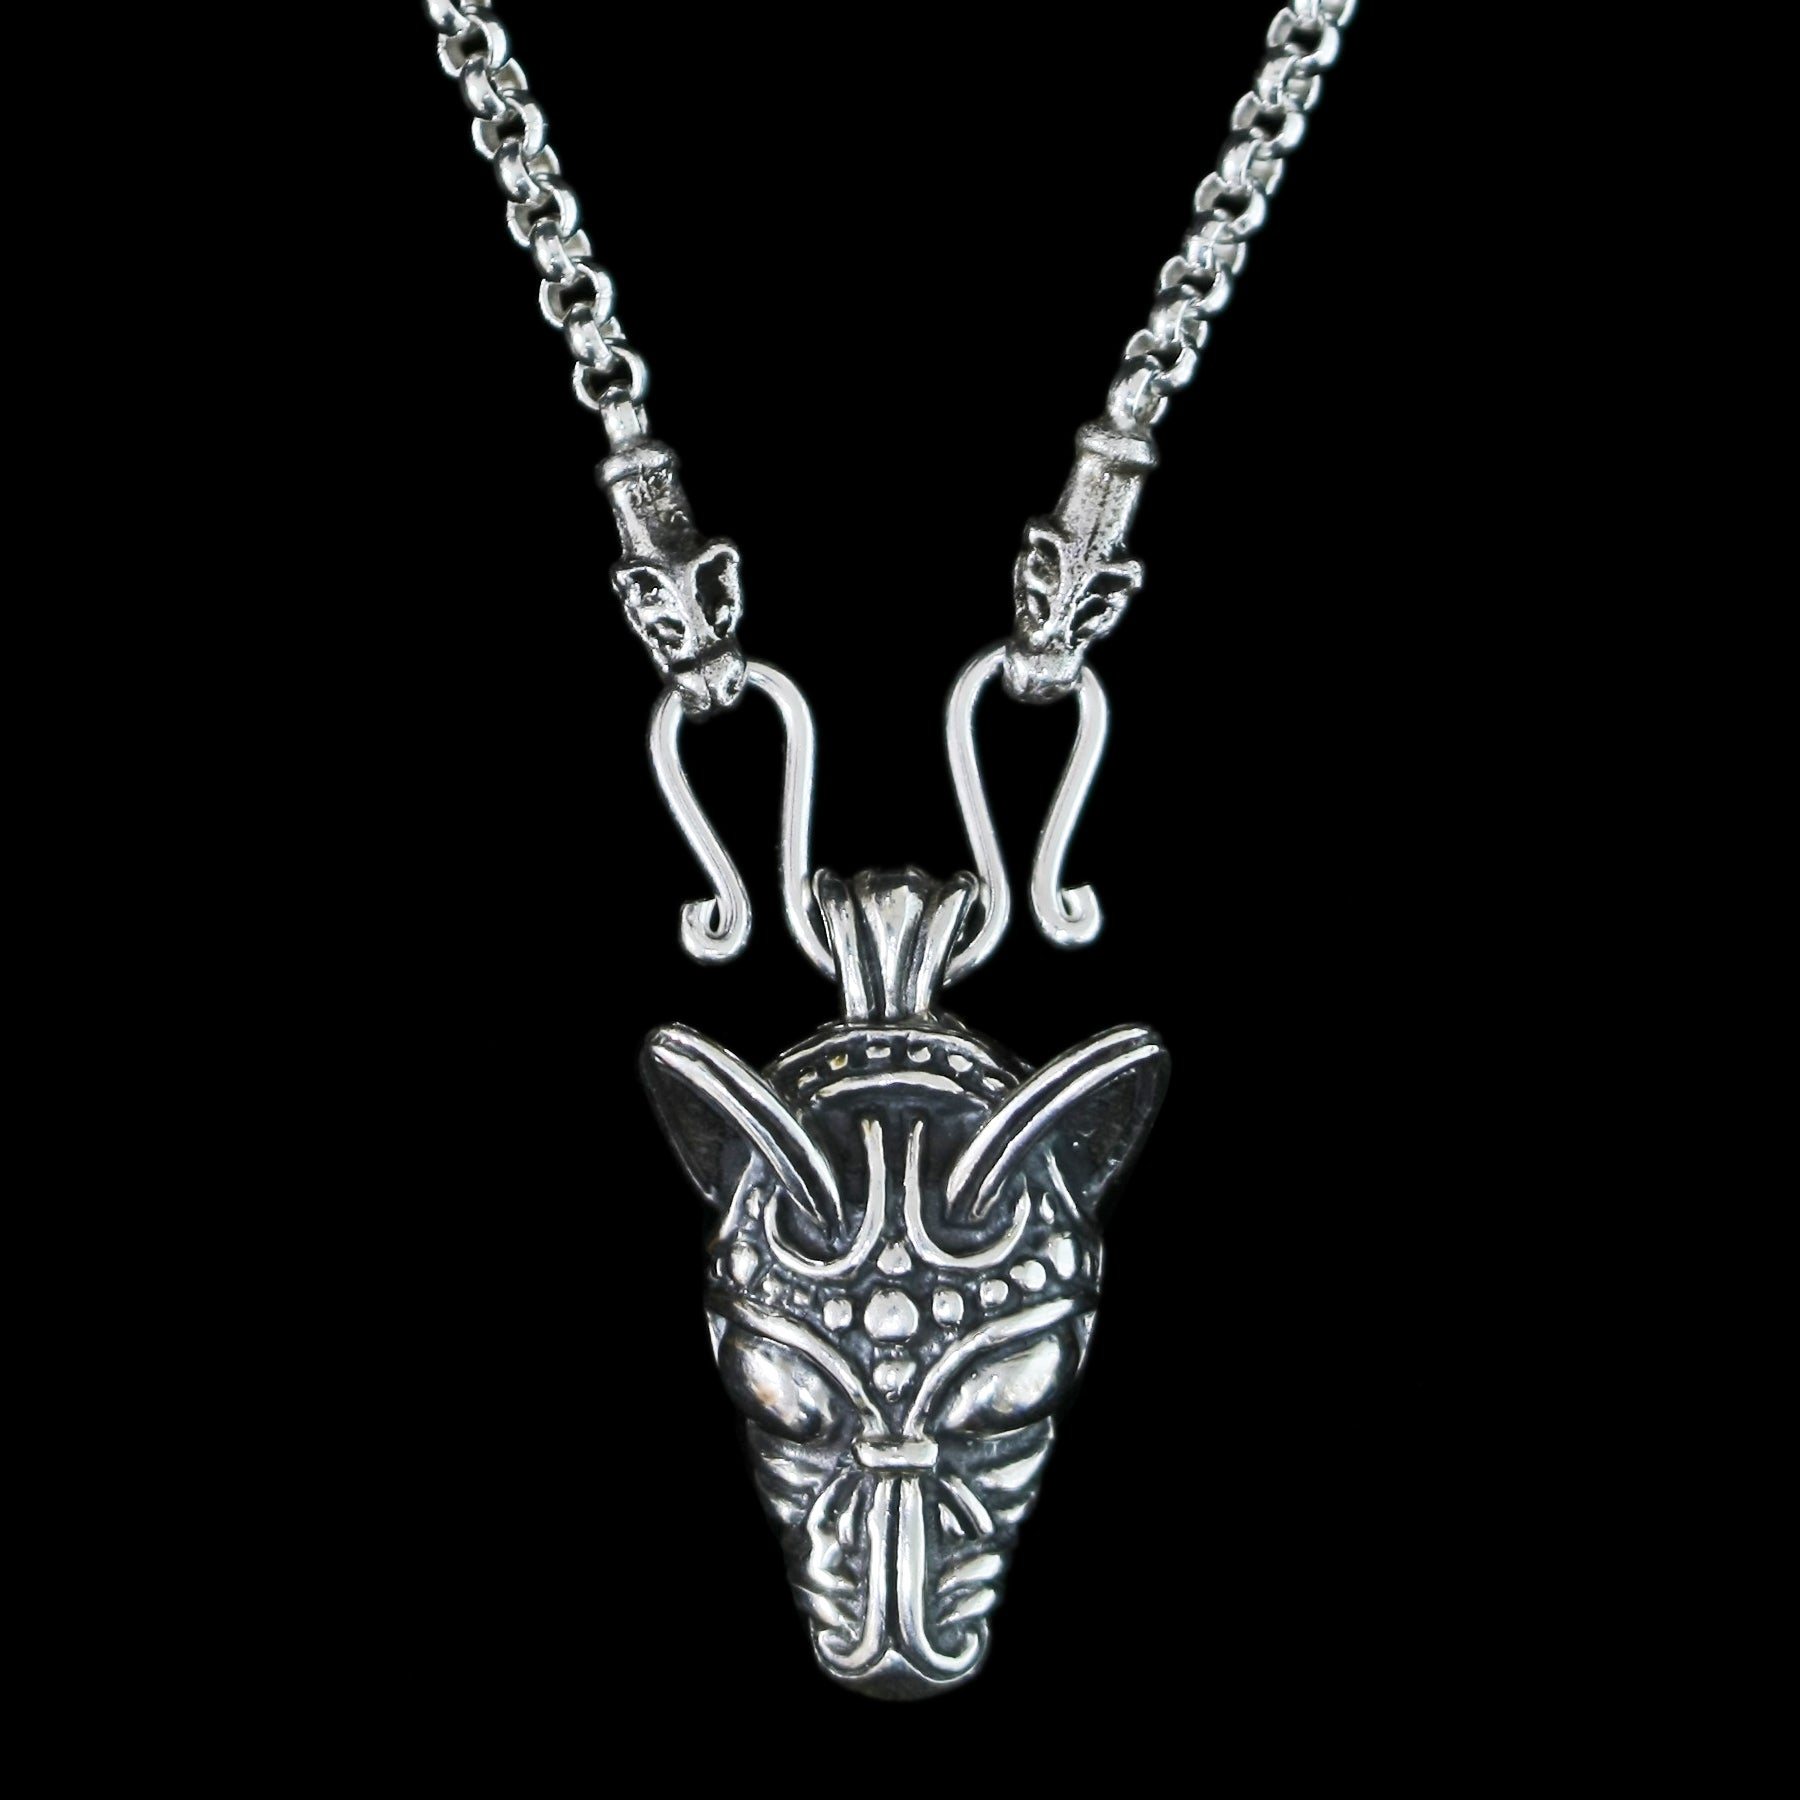 Sterling Silver Anchor Chain Viking Necklace with Icelandic Wolf Heads and Wolf Pendant - Viking Jewelry